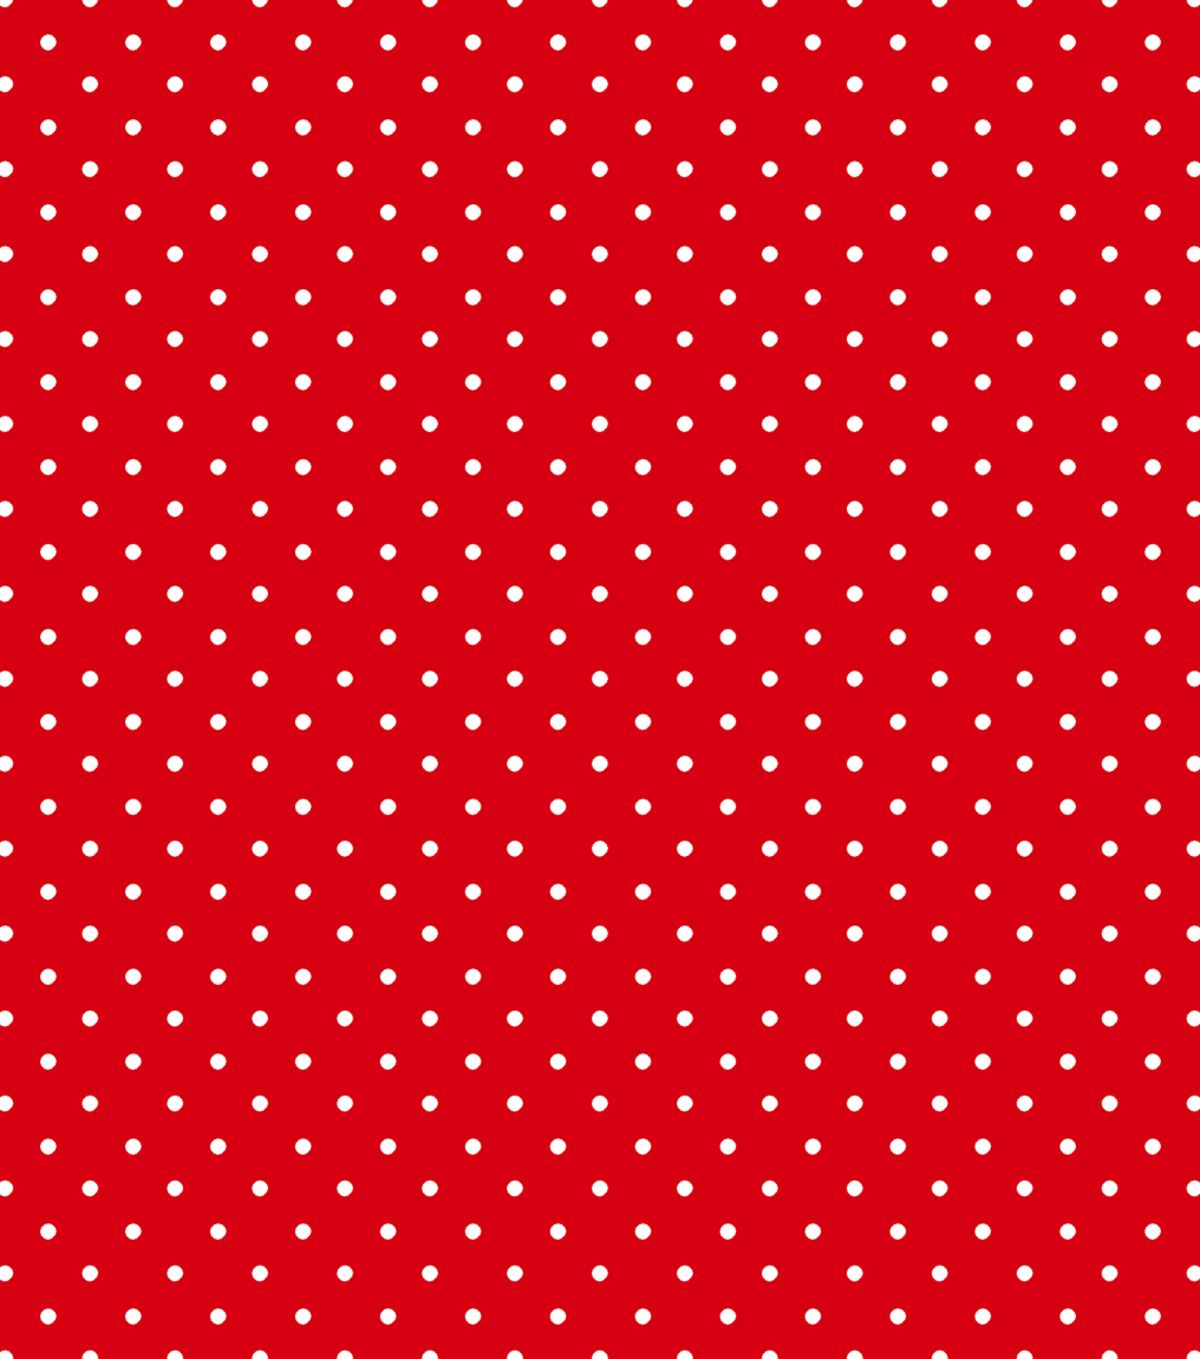 Tutti fruitti collection small polka dot red white for Red and white polka dot pattern